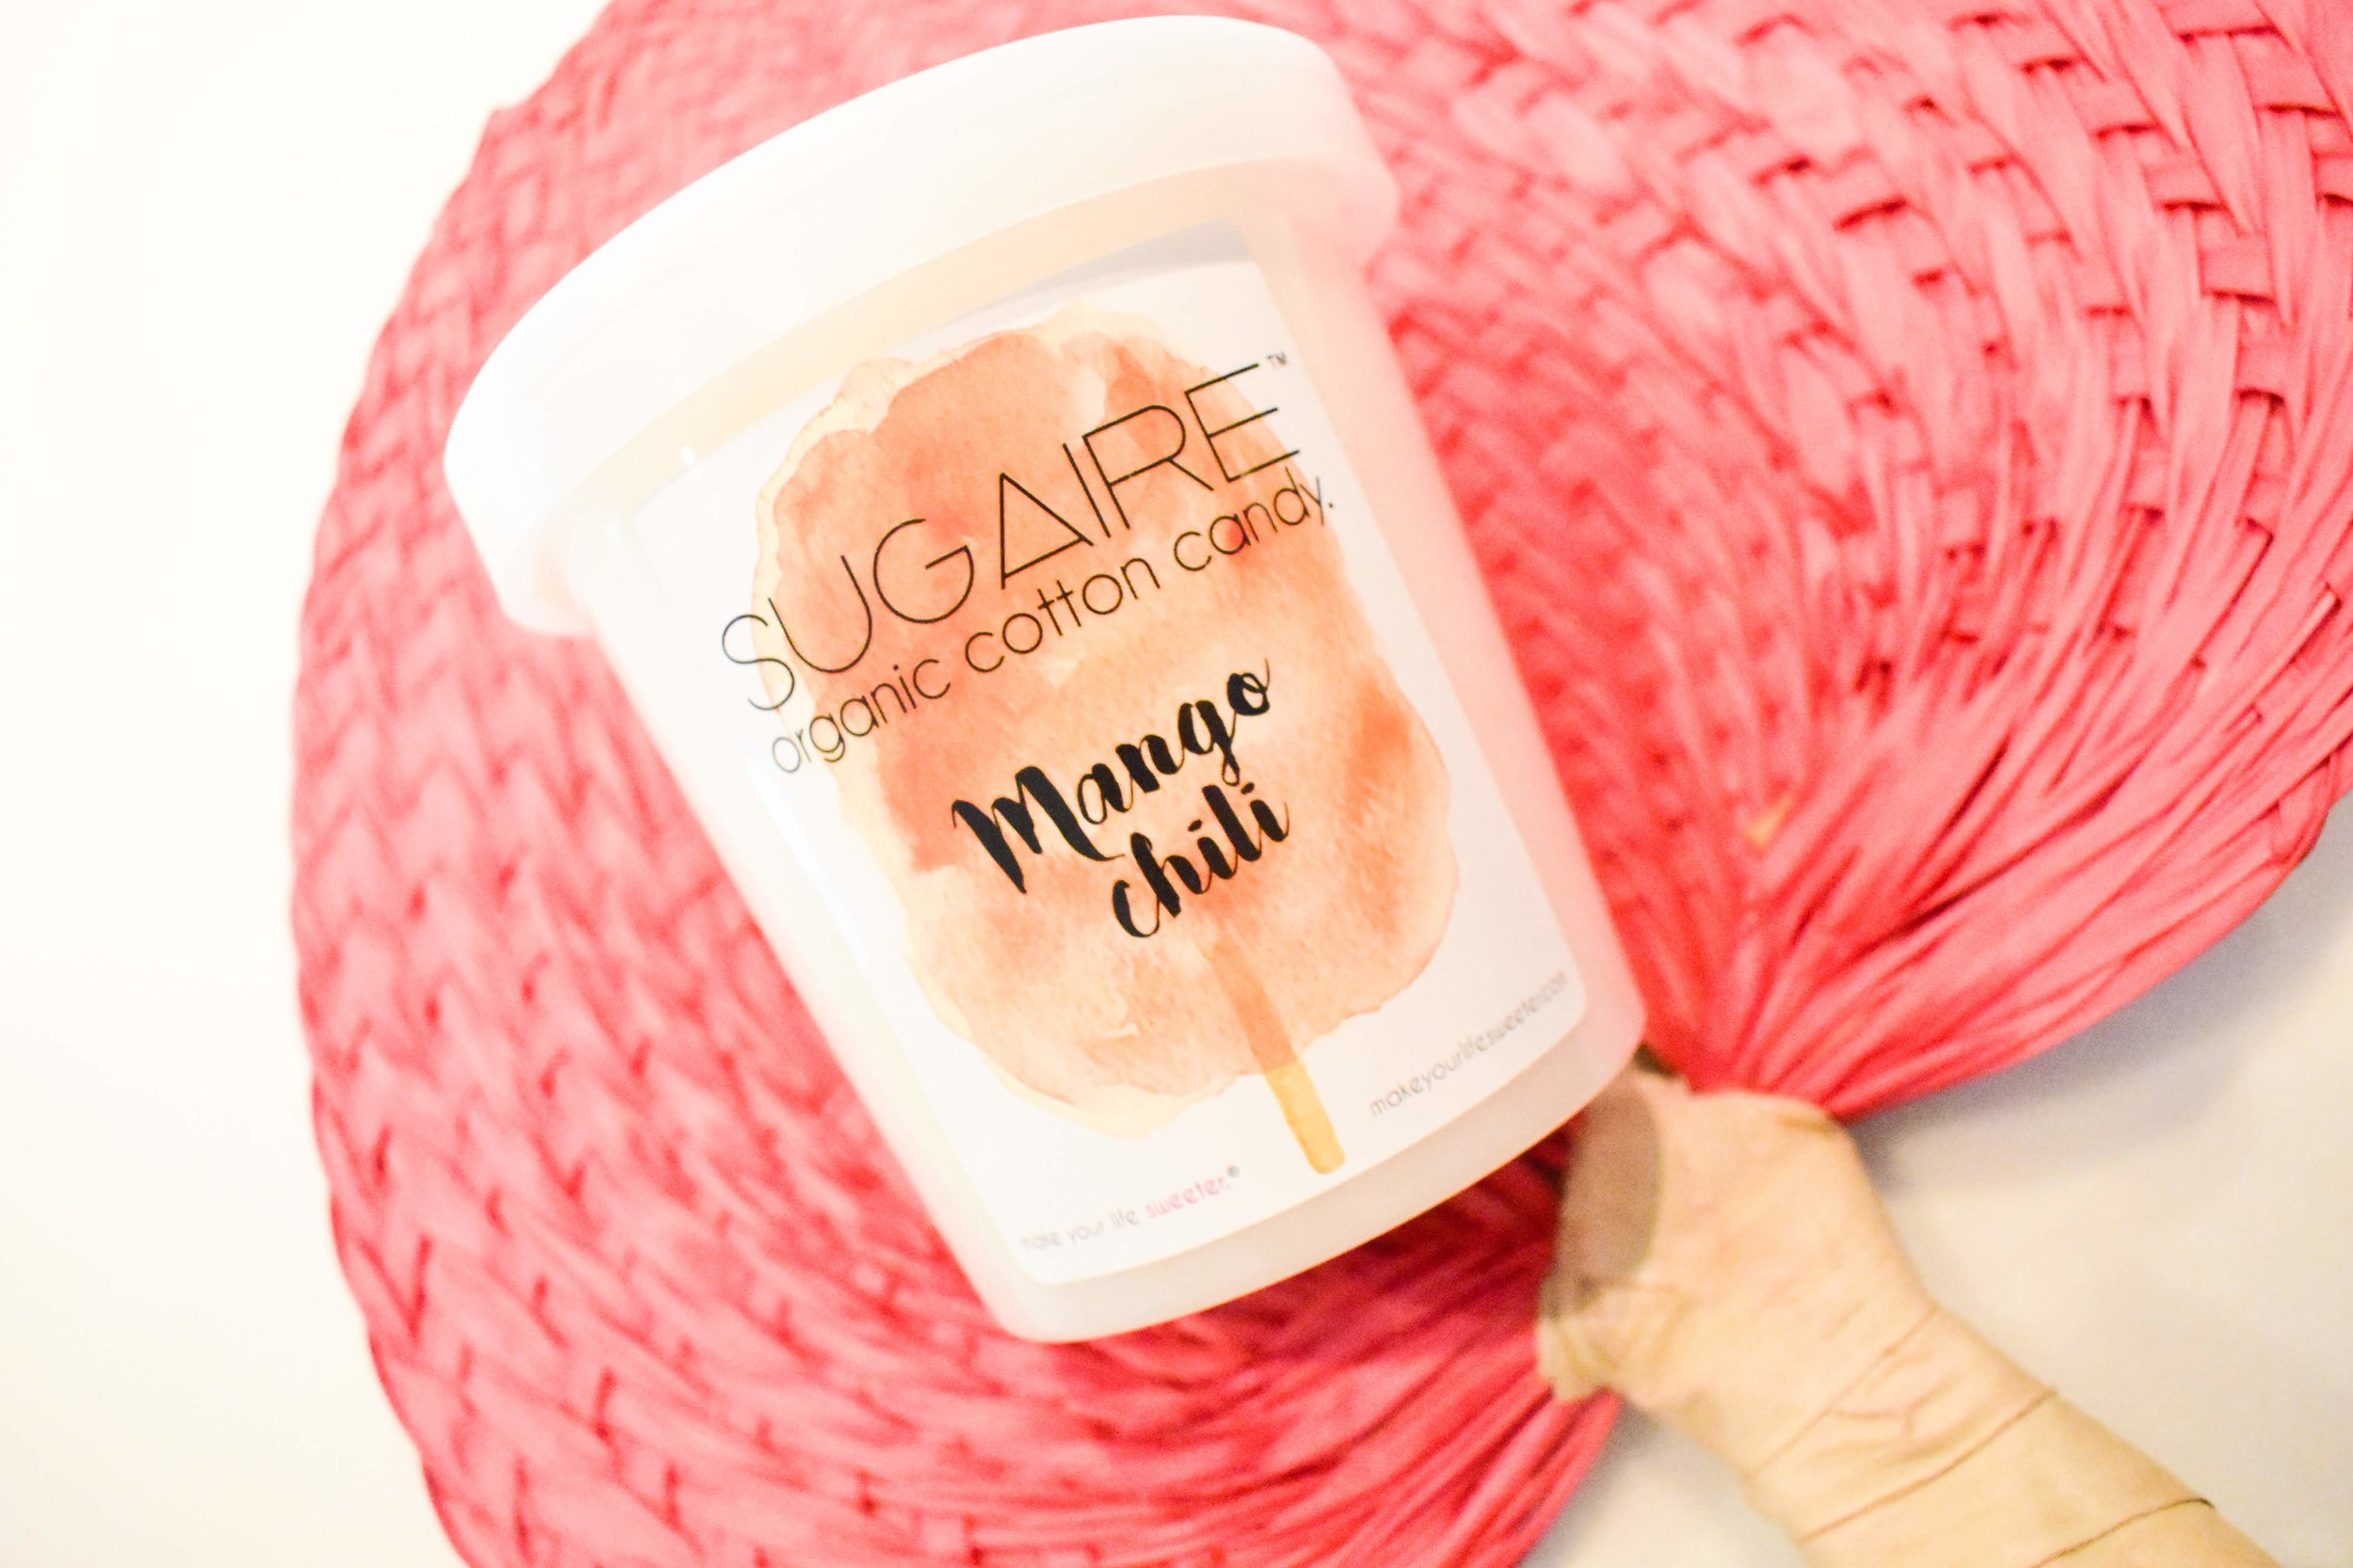 Sugaire Organic Cotton Candy - Plano Profile Cover Party